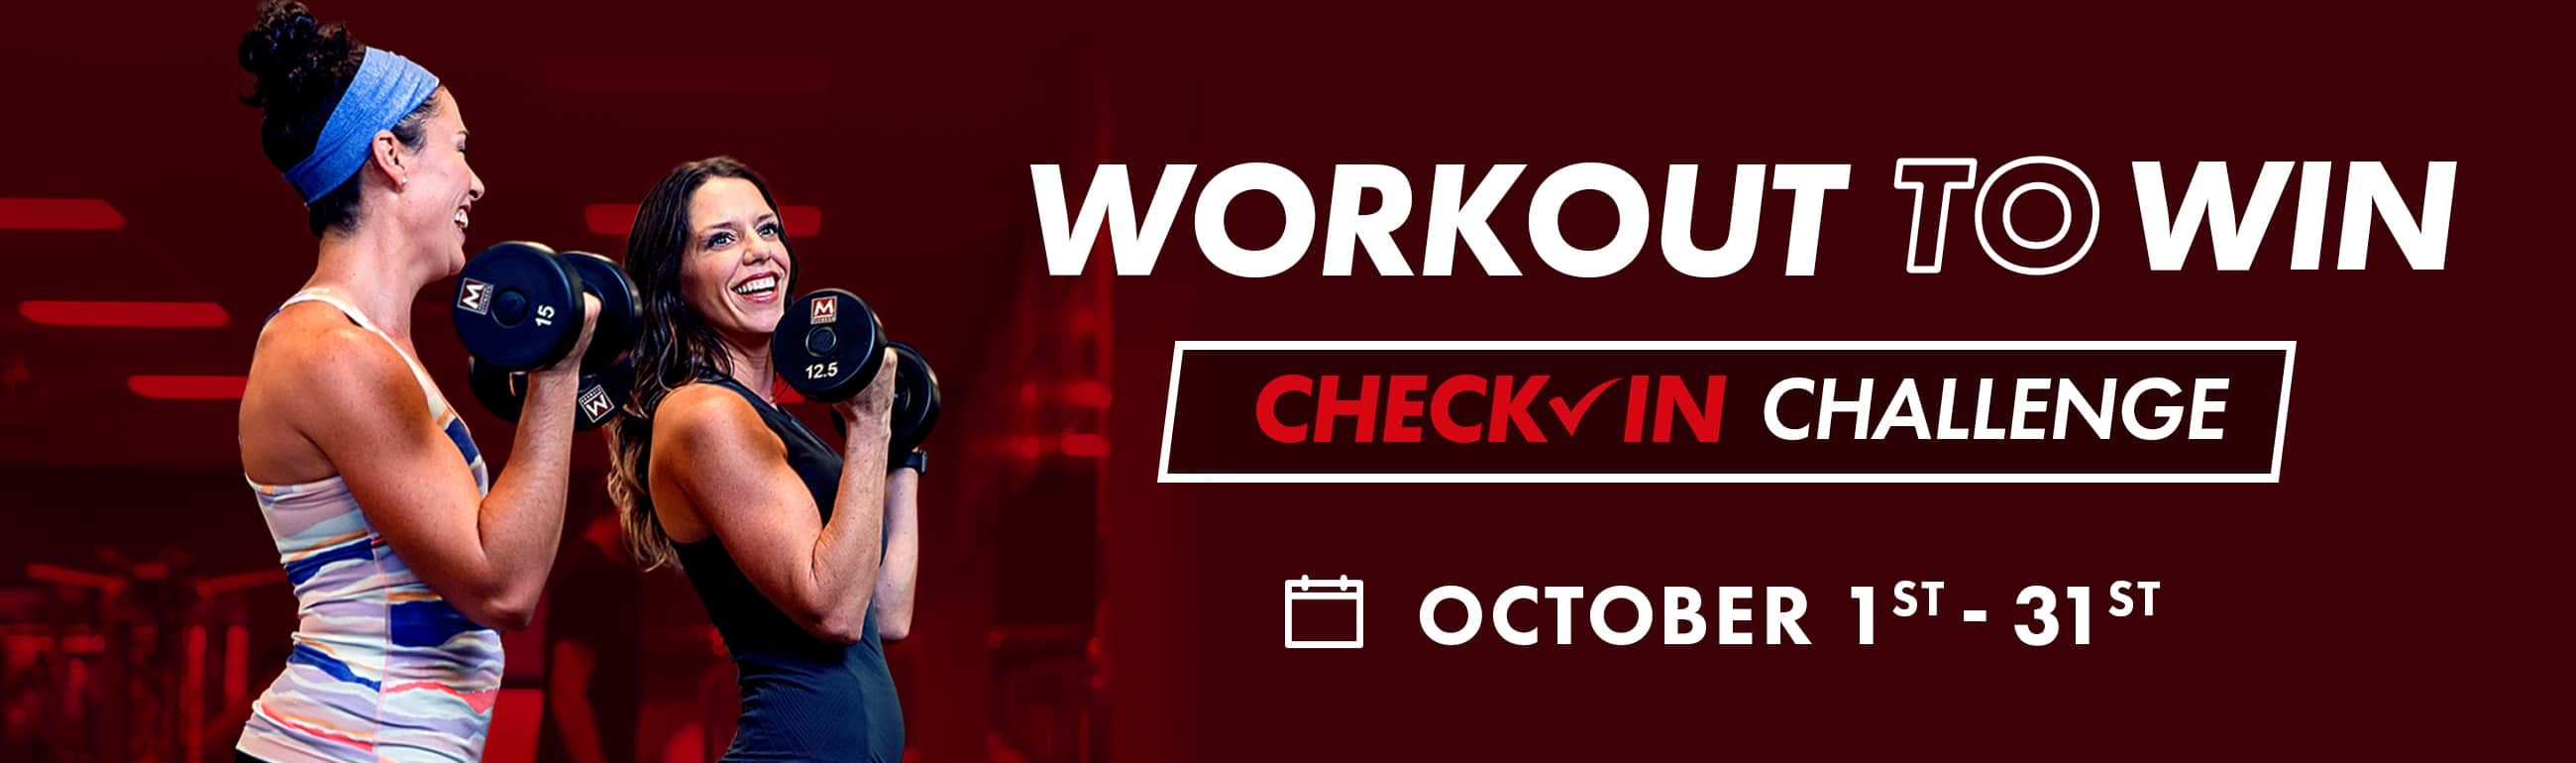 workout to win check-in challenge